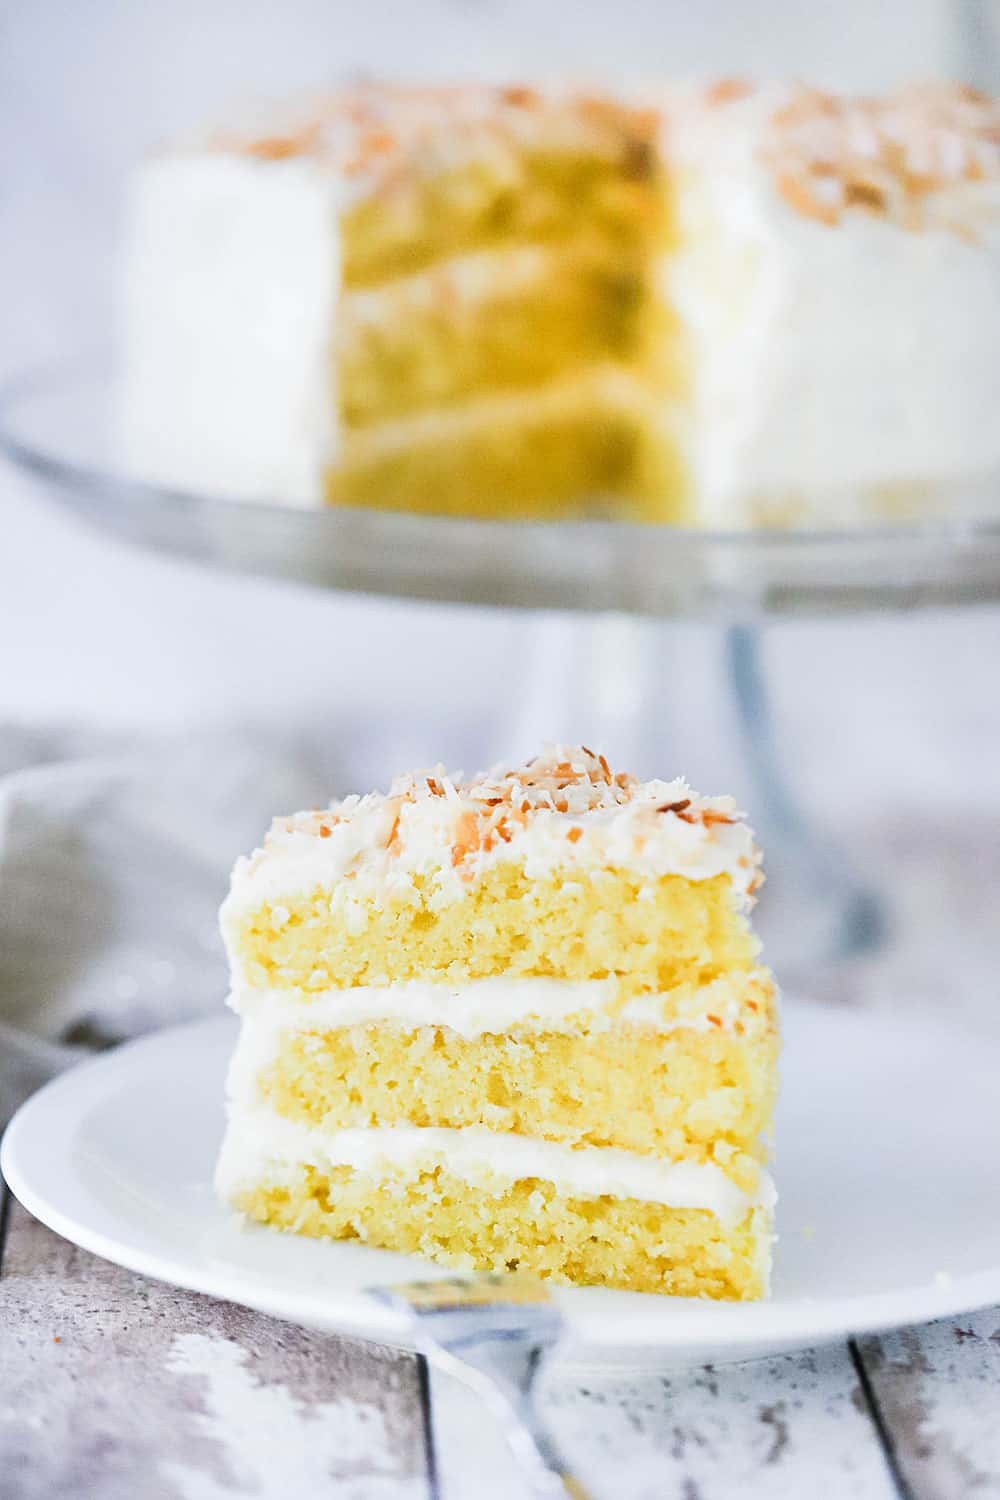 A 3-layered slice of coconut cream cake standing upright on a plate in front of the cake on a cake stand.